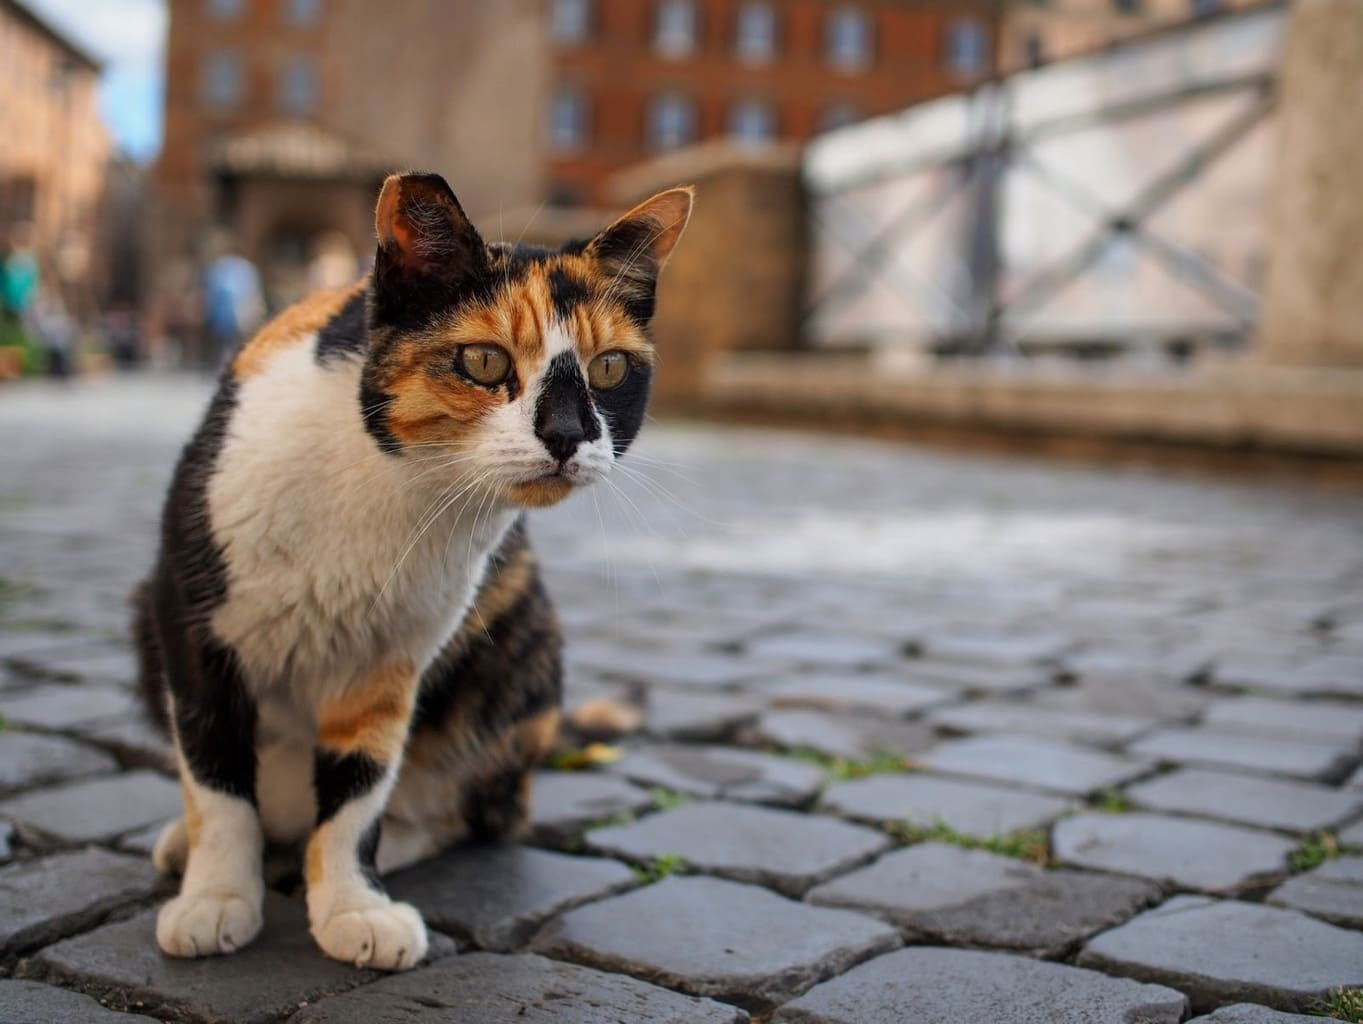 Protected street cat in Rome